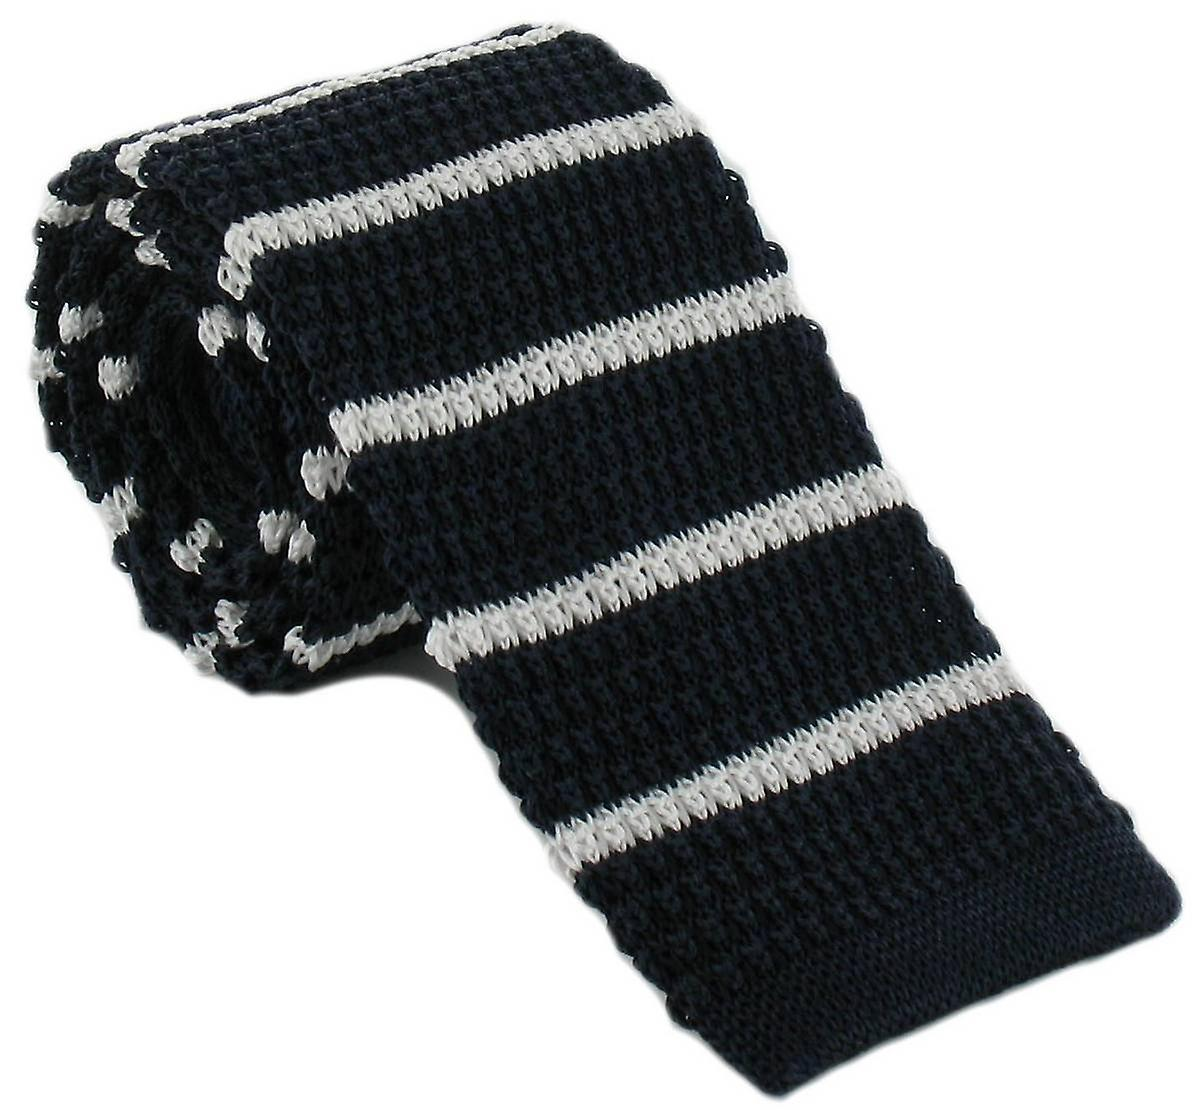 Michelsons of London Silk Knitted Striped Skinny Tie - Navy/White